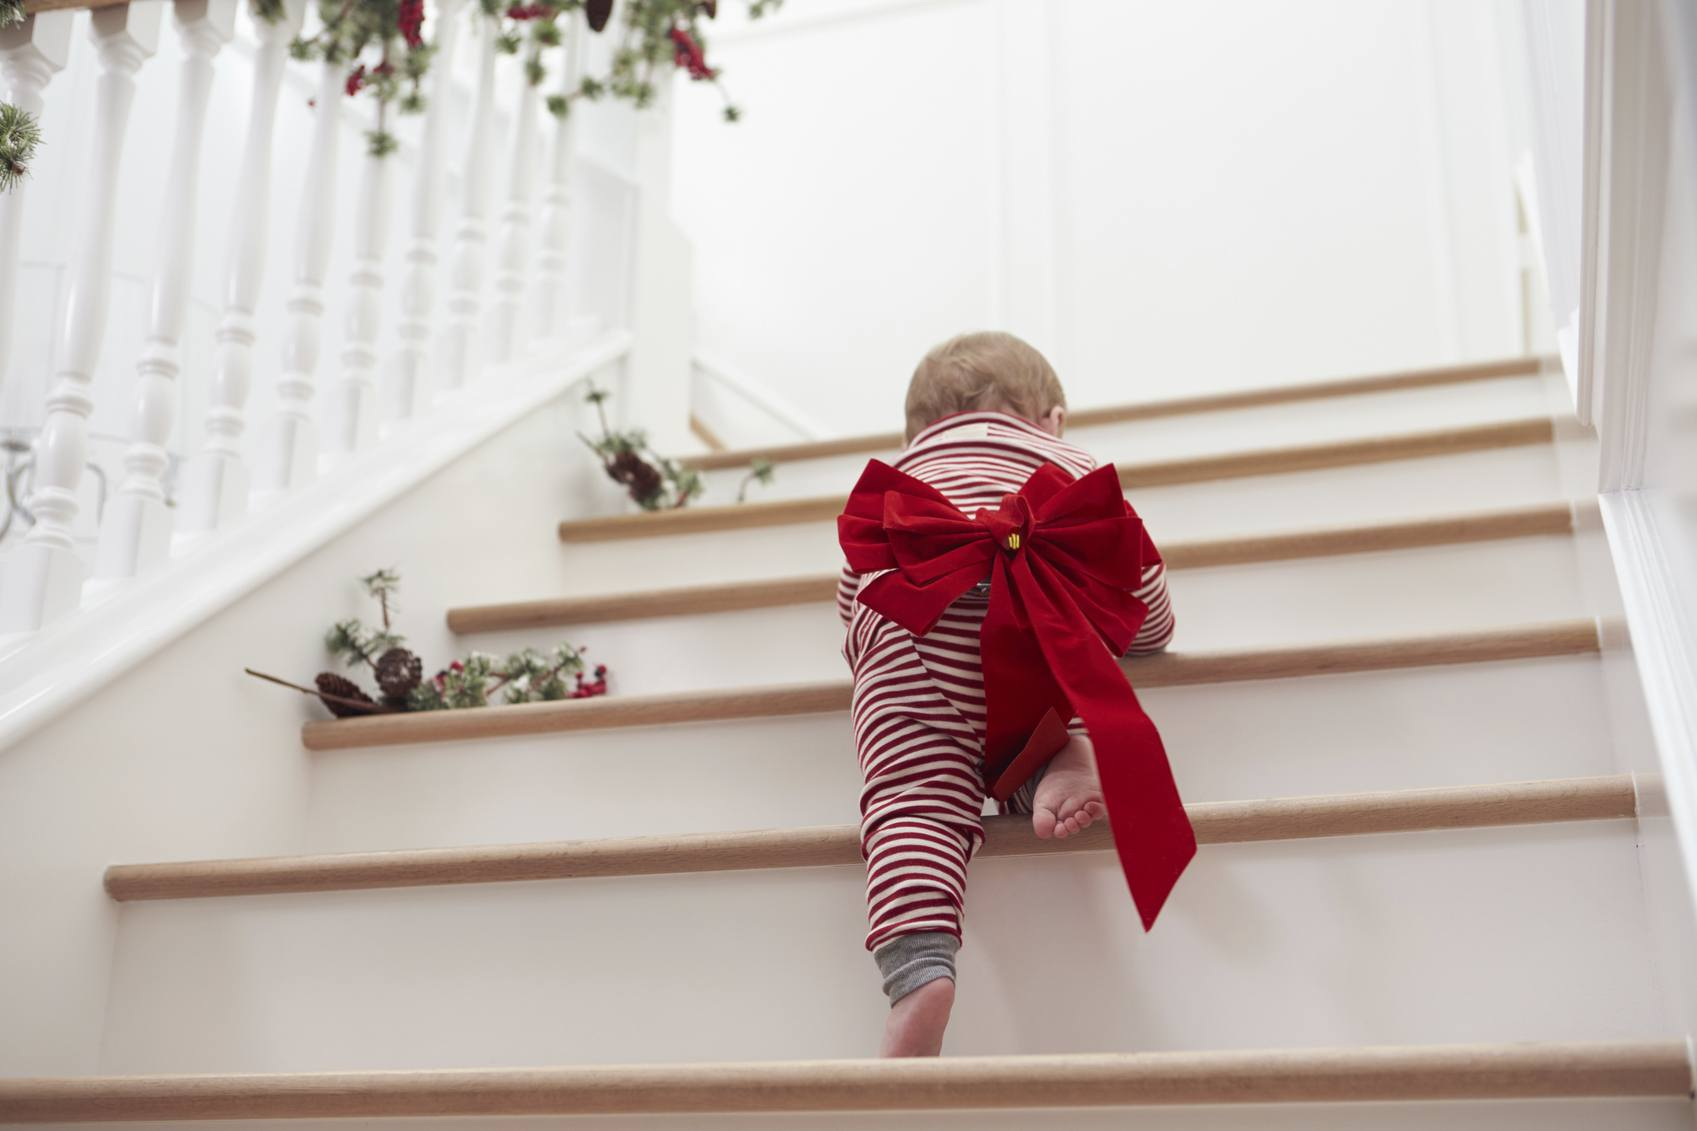 Baby crawling up staircase with bow